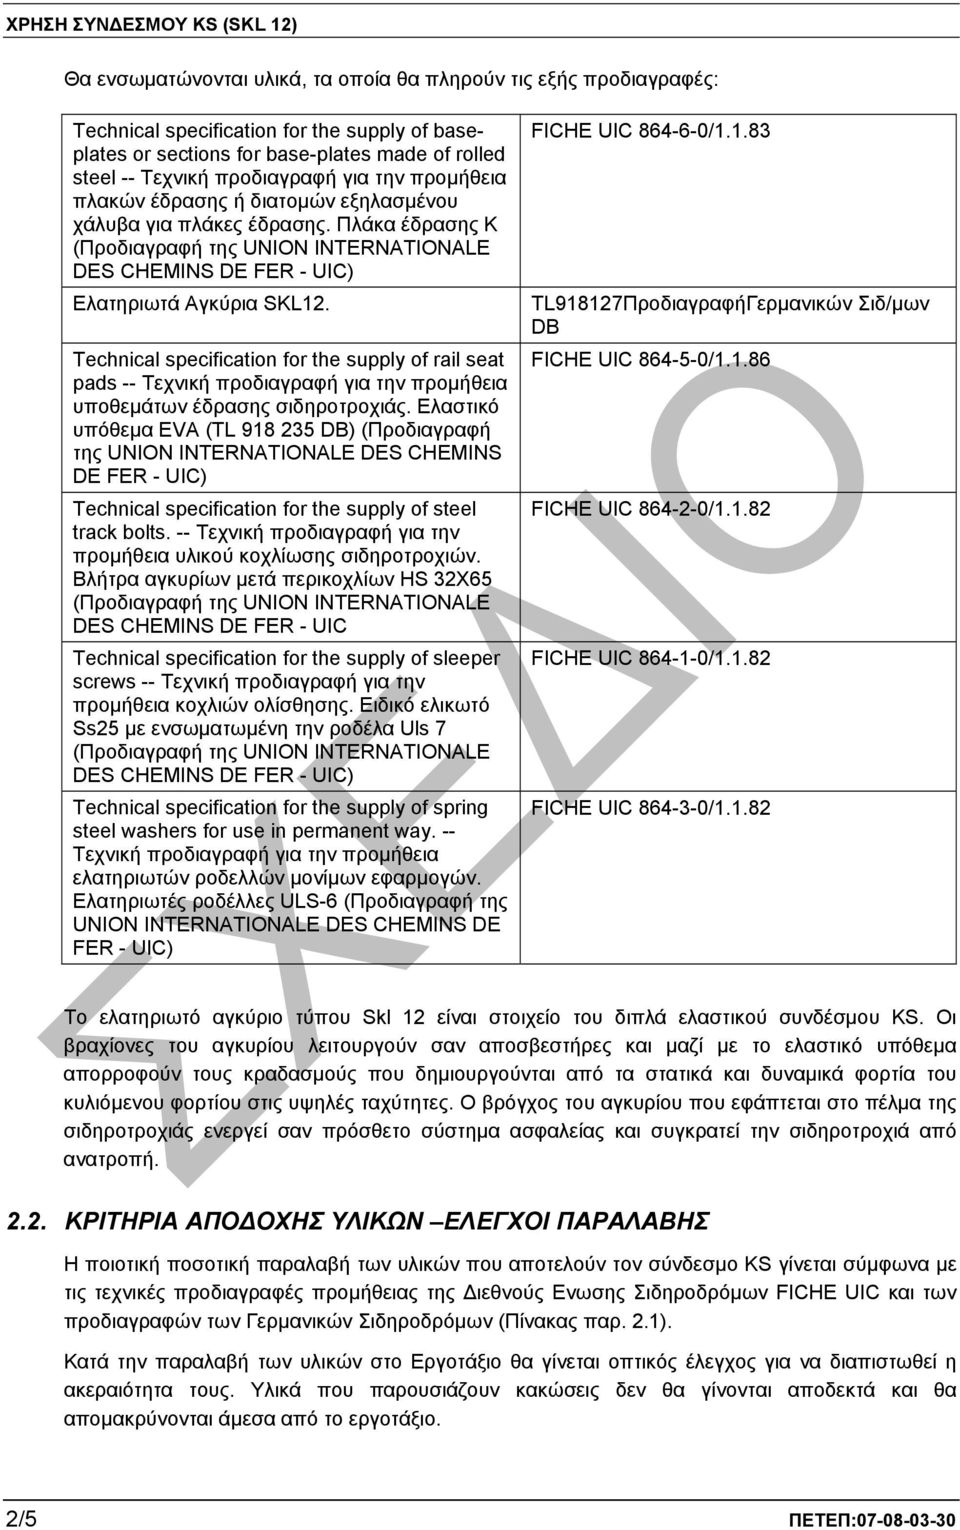 Technical specification for the supply of rail seat pads -- Τεχνική προδιαγραφή για την προµήθεια υποθεµάτων έδρασης σιδηροτροχιάς.